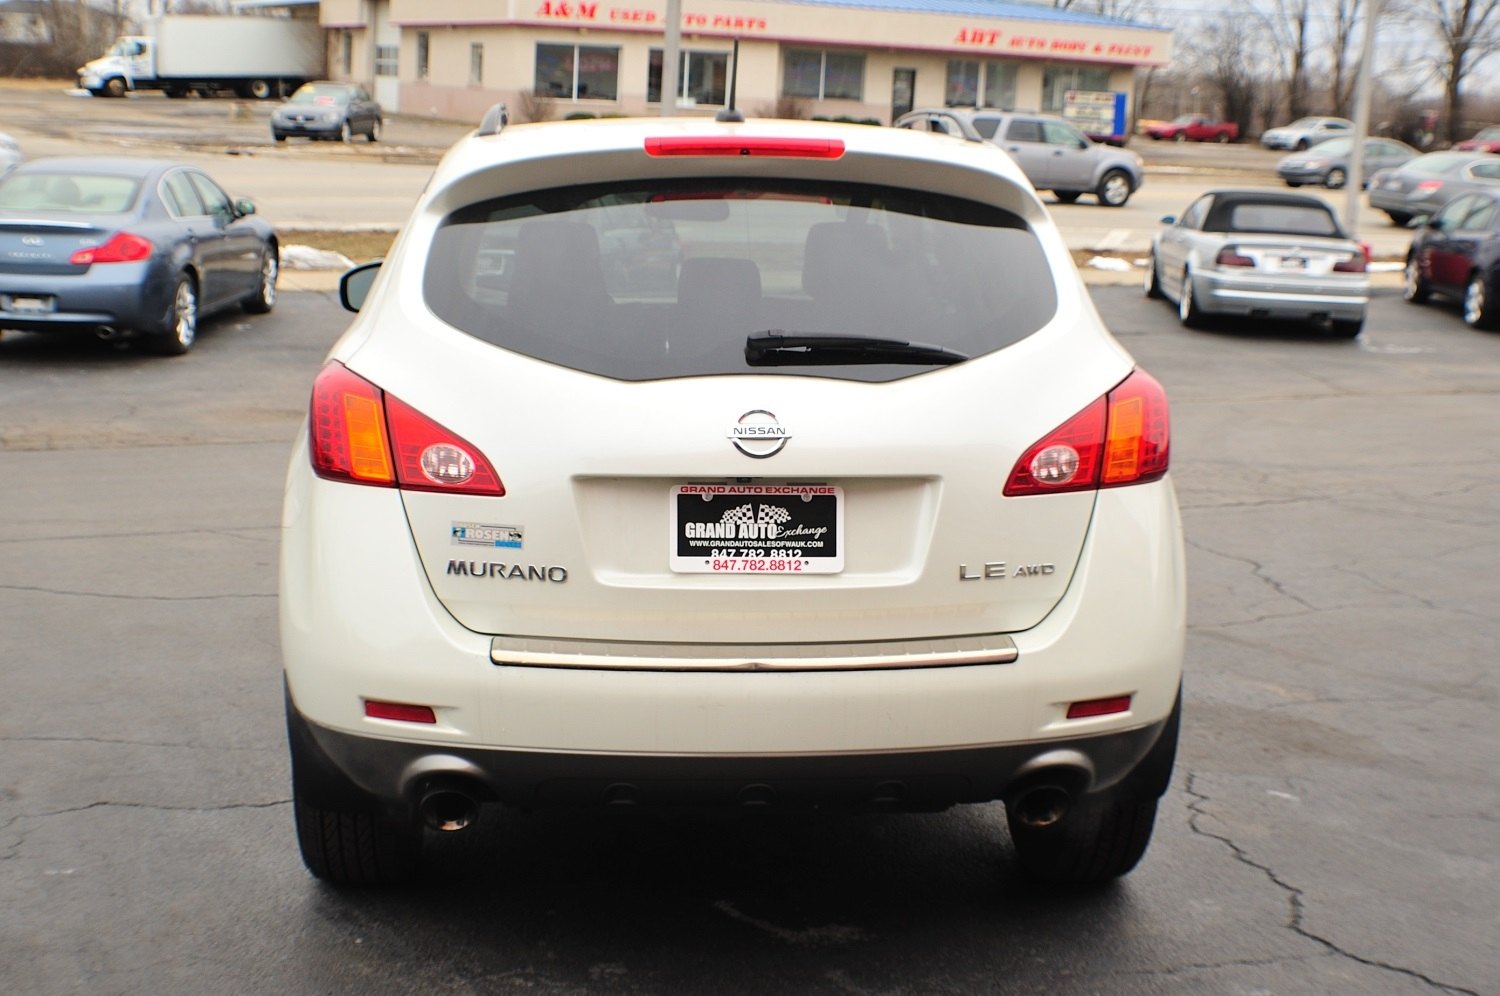 2010 nissan murano le awd white suv sale 2010 nissan murano le awd white suv sale buffalo grove deerfield fox lake antioch vanachro Image collections